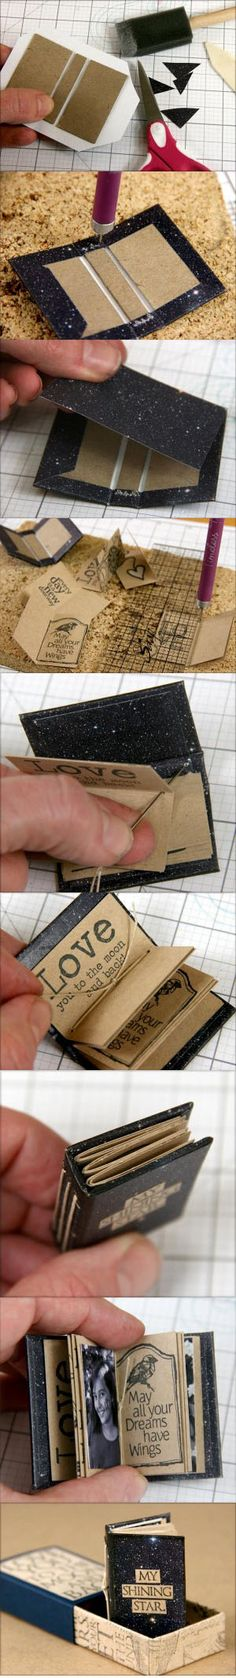 Constellations Mini Album Tutorial #clubscrap http://clubscrap.com/constellations-matchbox-mini-album-tutorial/                                                                                                                                                      More